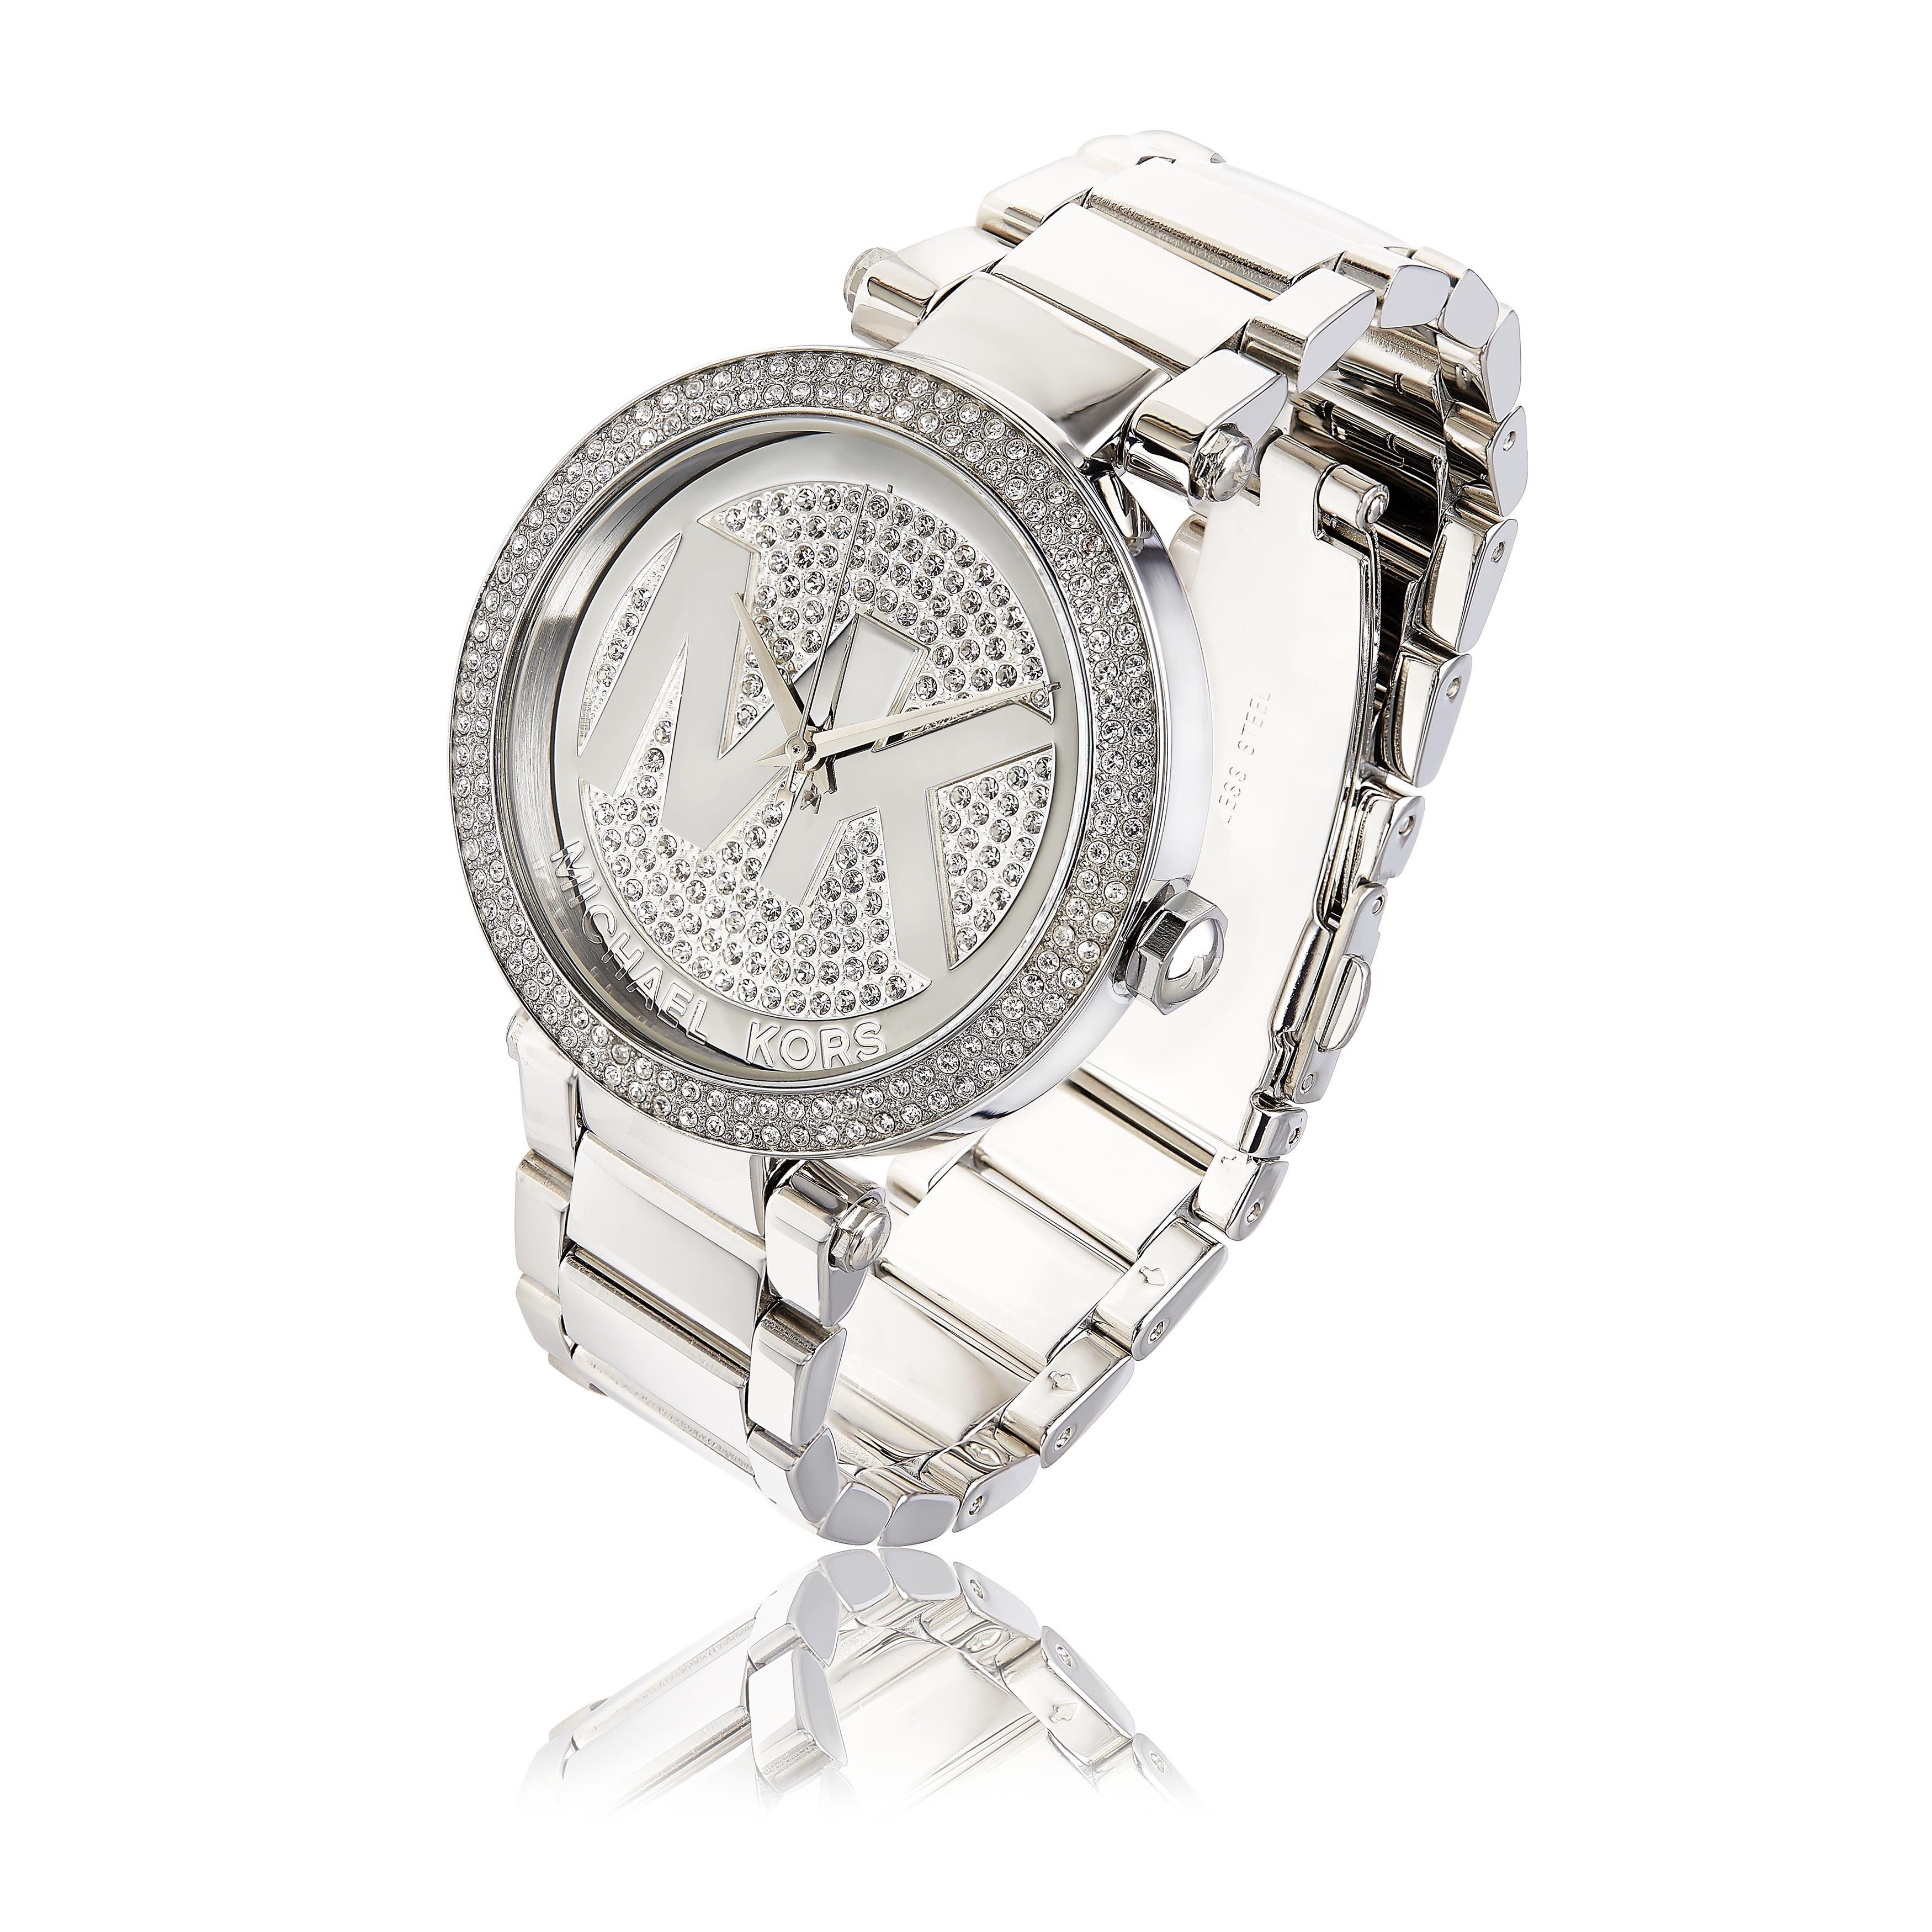 db3cdc3d44f8 Shop Michael Kors Women s Parker MK5925 Silver Stainless-Steel Quartz Watch  with Silver Dial - Free Shipping Today - Overstock - 9612813